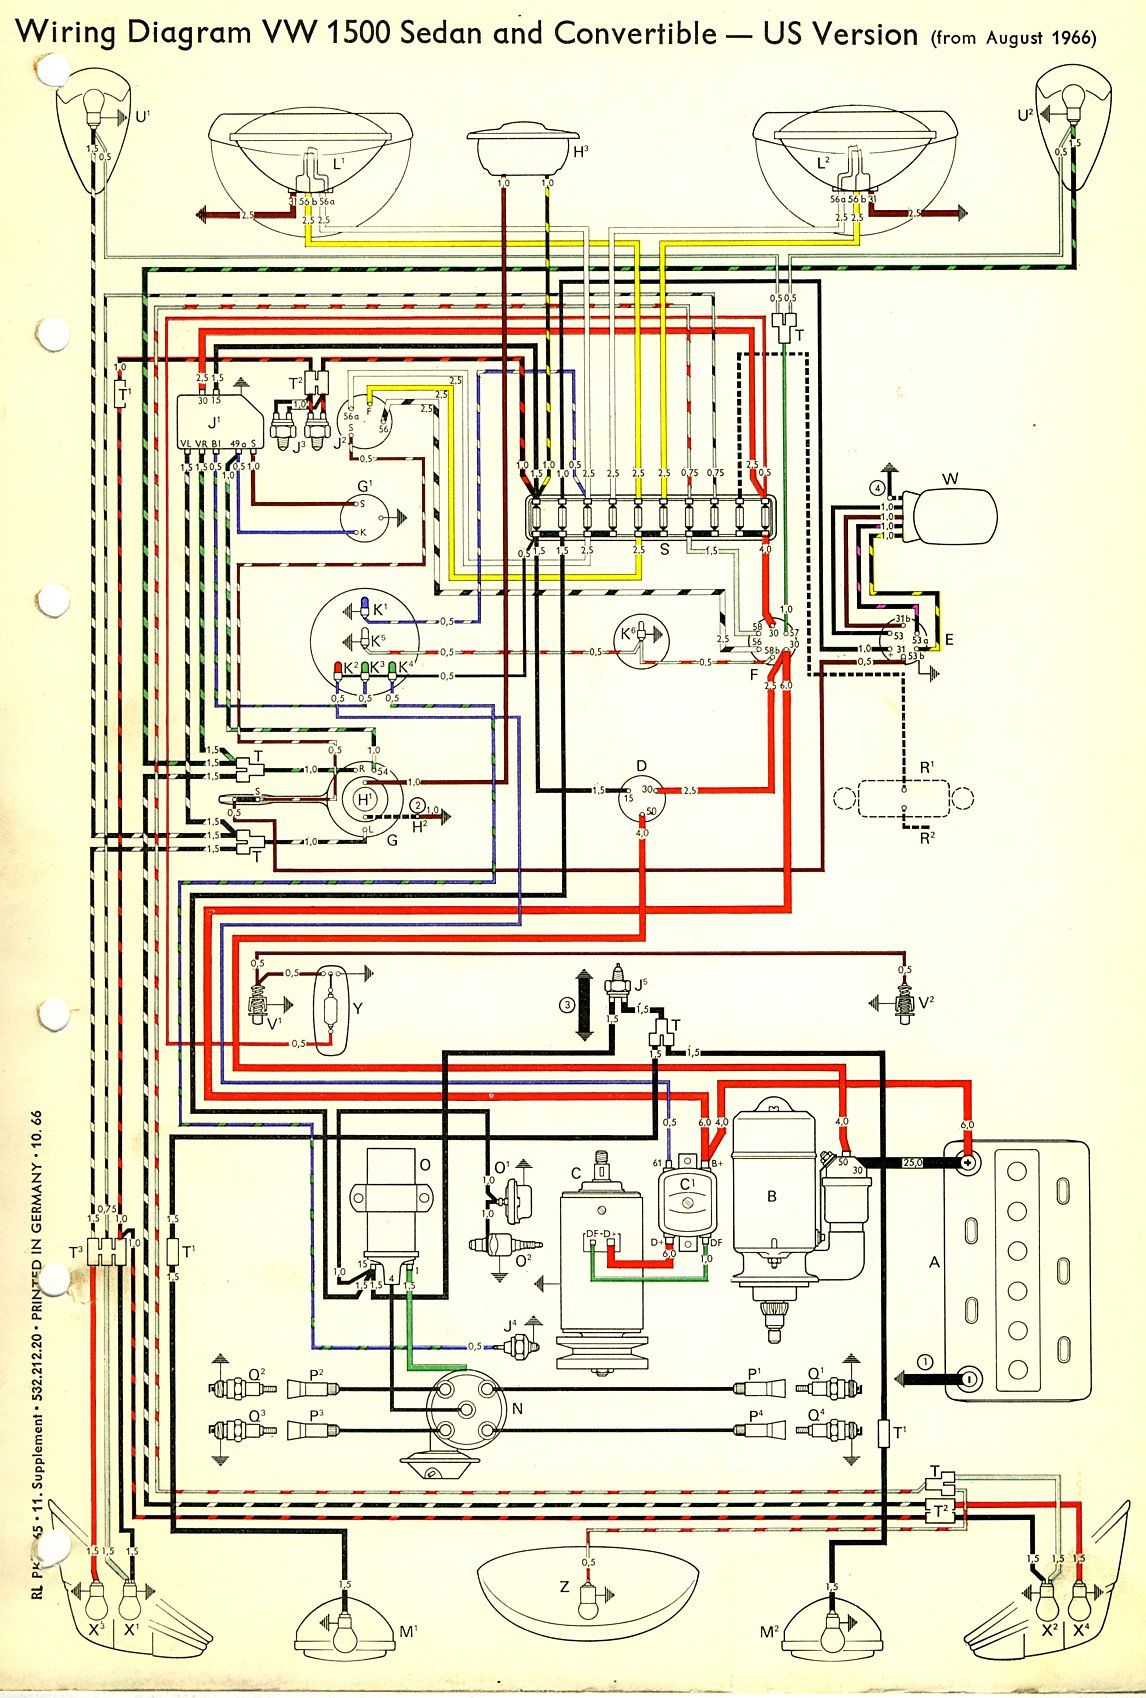 1adf990c0efb617c789fdd21338448b0 1967 beetle wiring diagram (usa) thegoldenbug com best 1967 vw 1971 vw bus wiring diagram at gsmportal.co